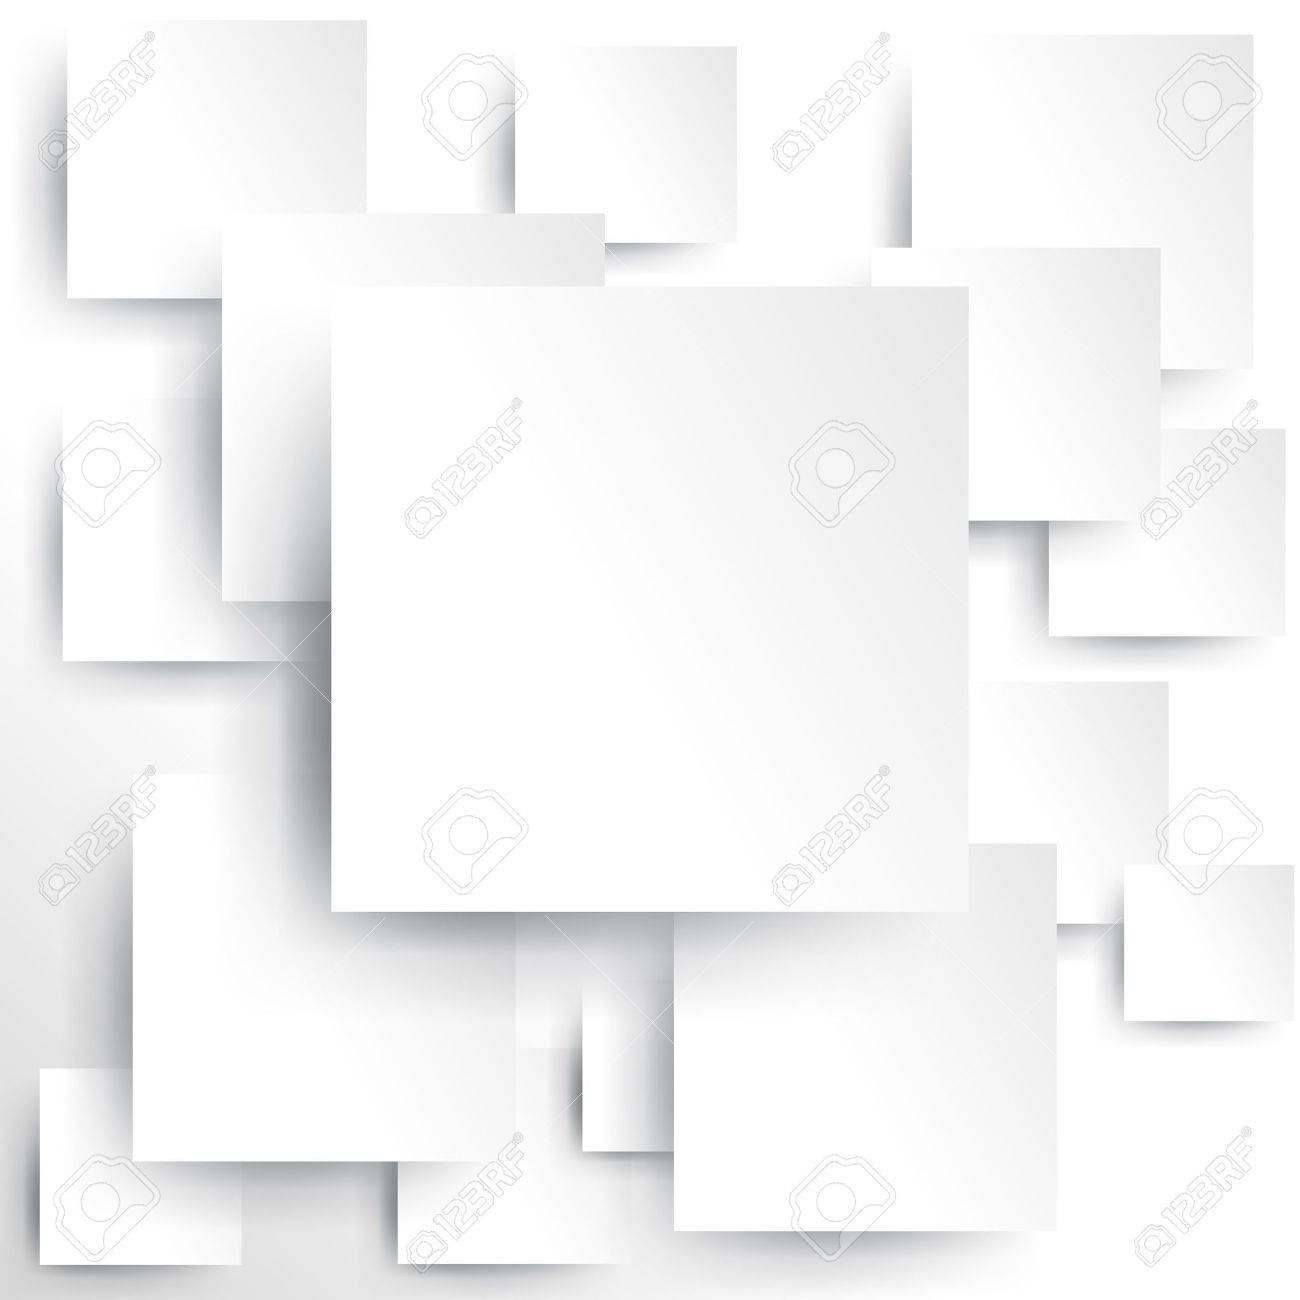 Square element on white paper with shadow Stock Vector - 17046353